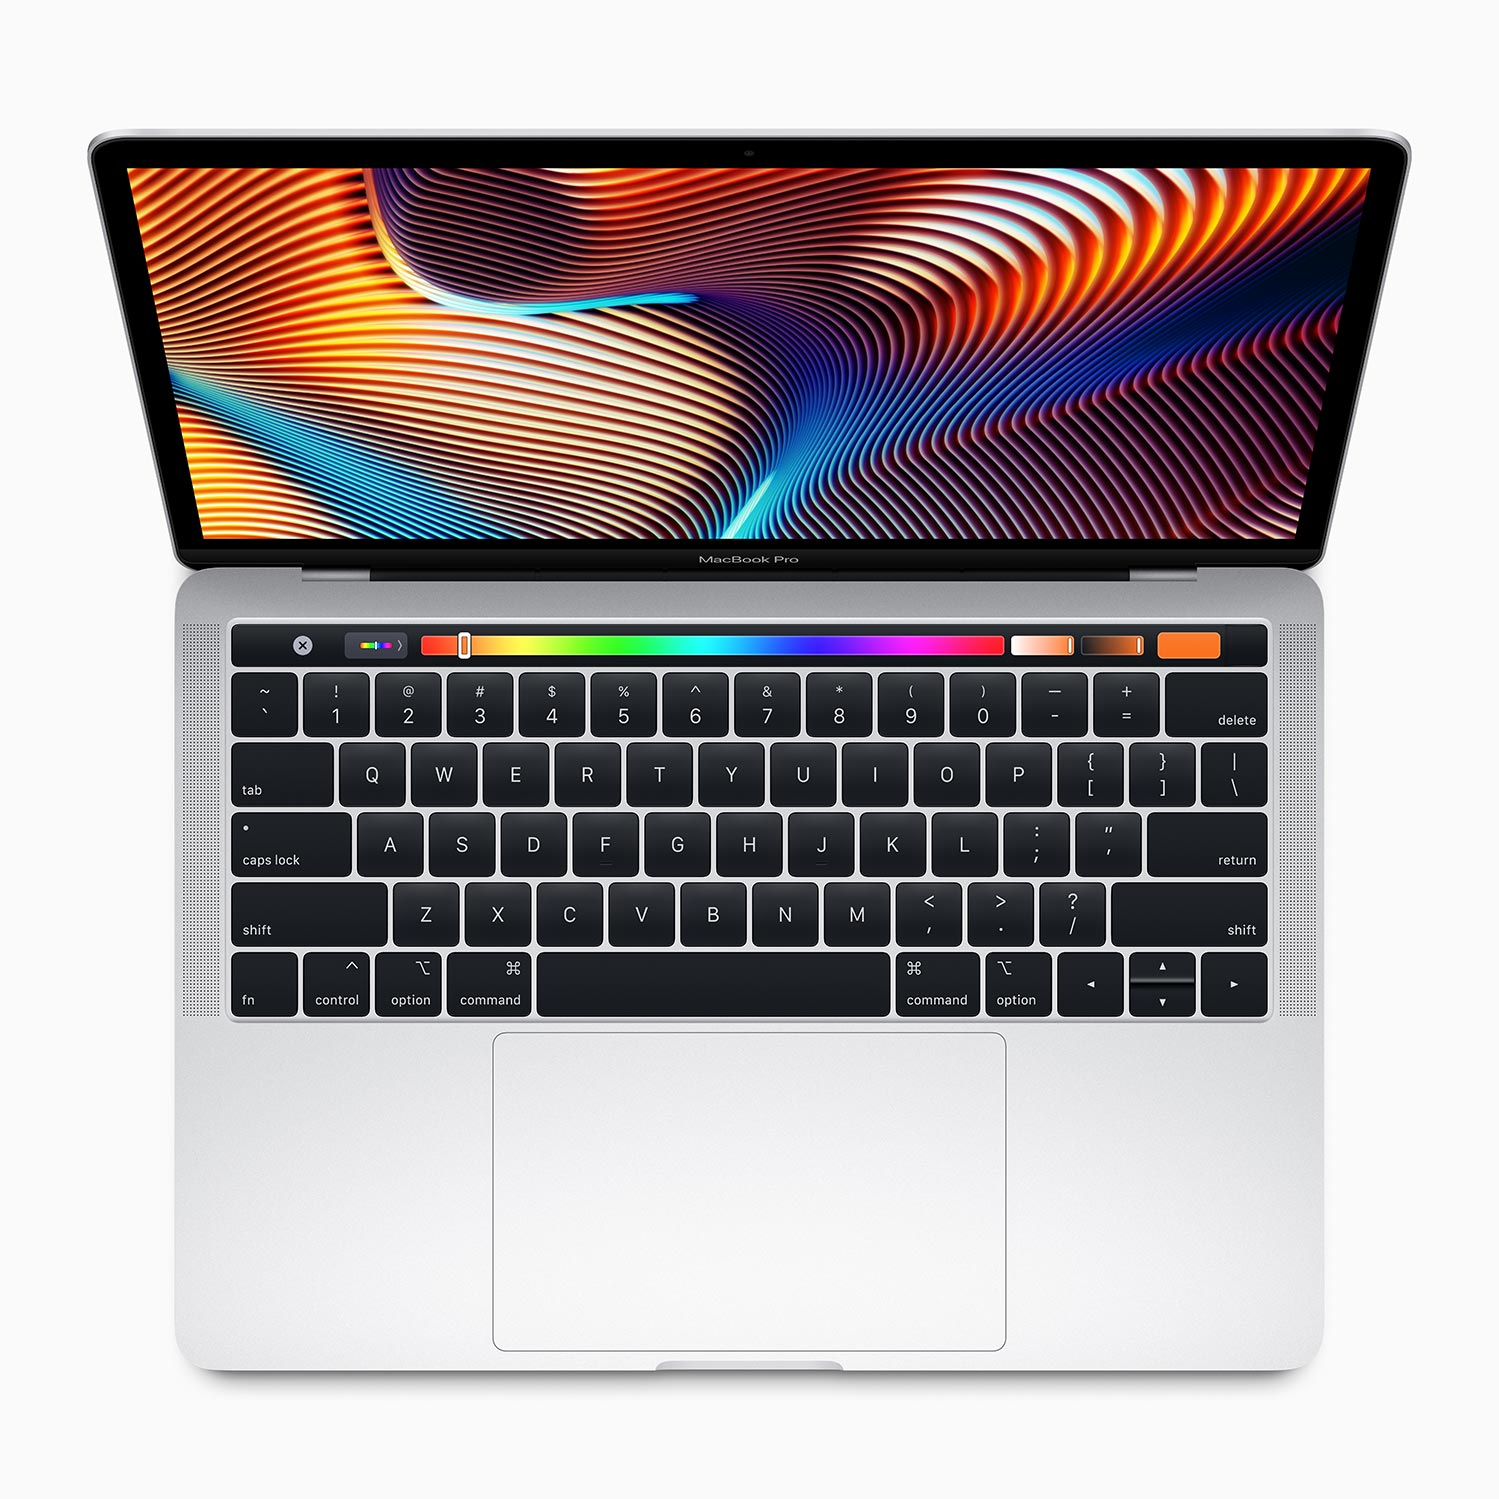 Entry 13-inch MacBook Pro now with Touch Bar and Touch ID